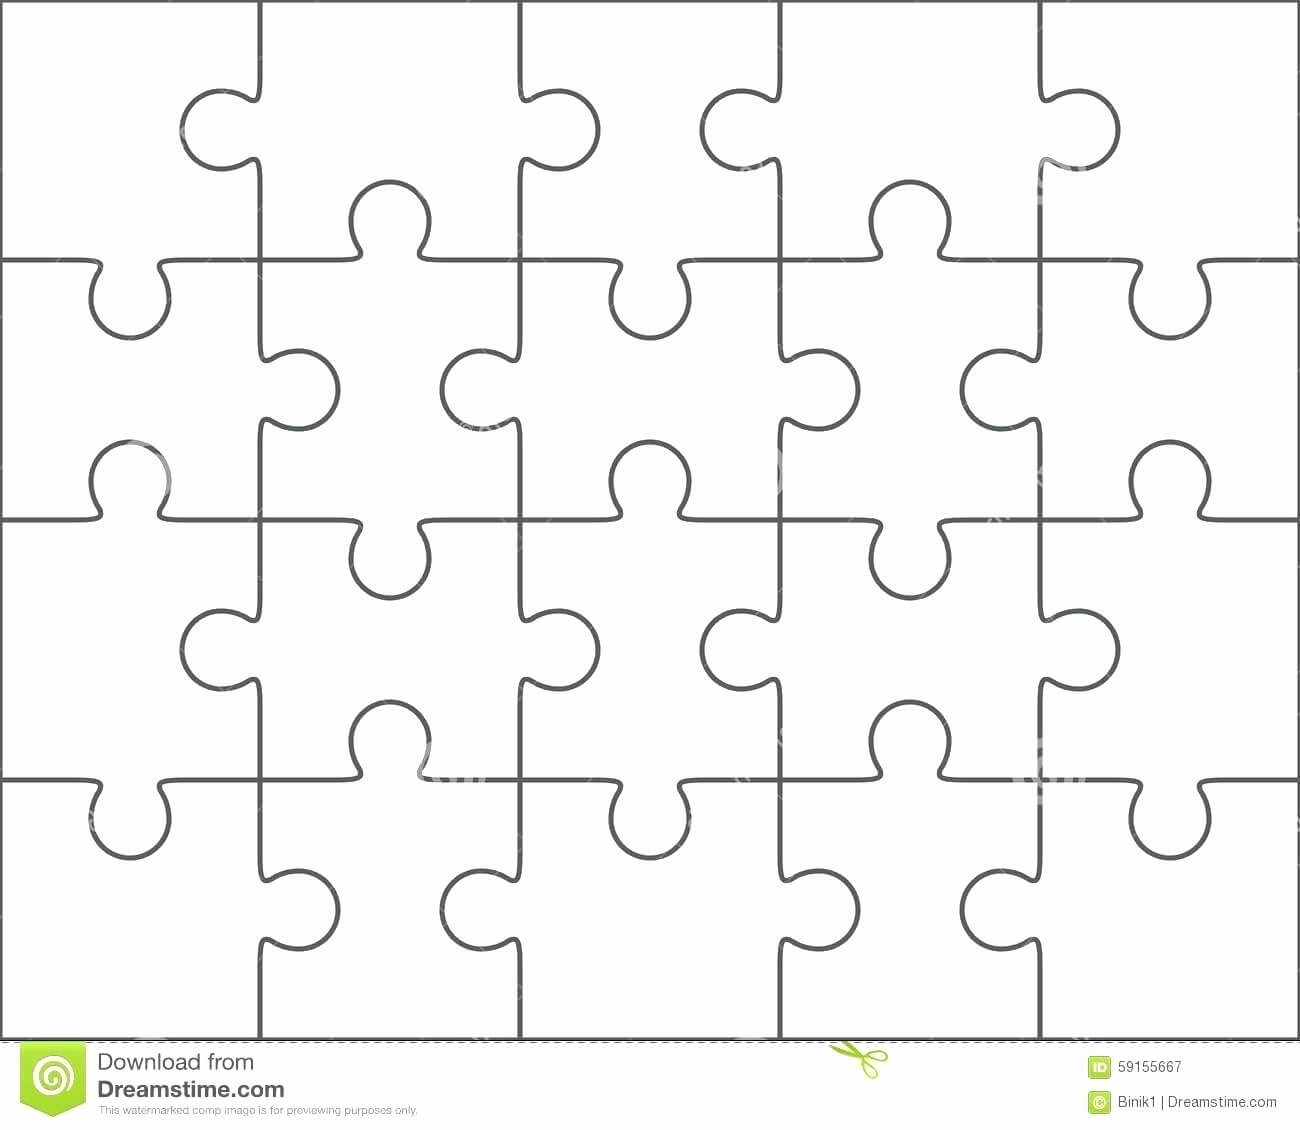 Puzzle Pieces Template For Word Best Of Template 5 Piece Intended For Jigsaw Puzzle Template For Word